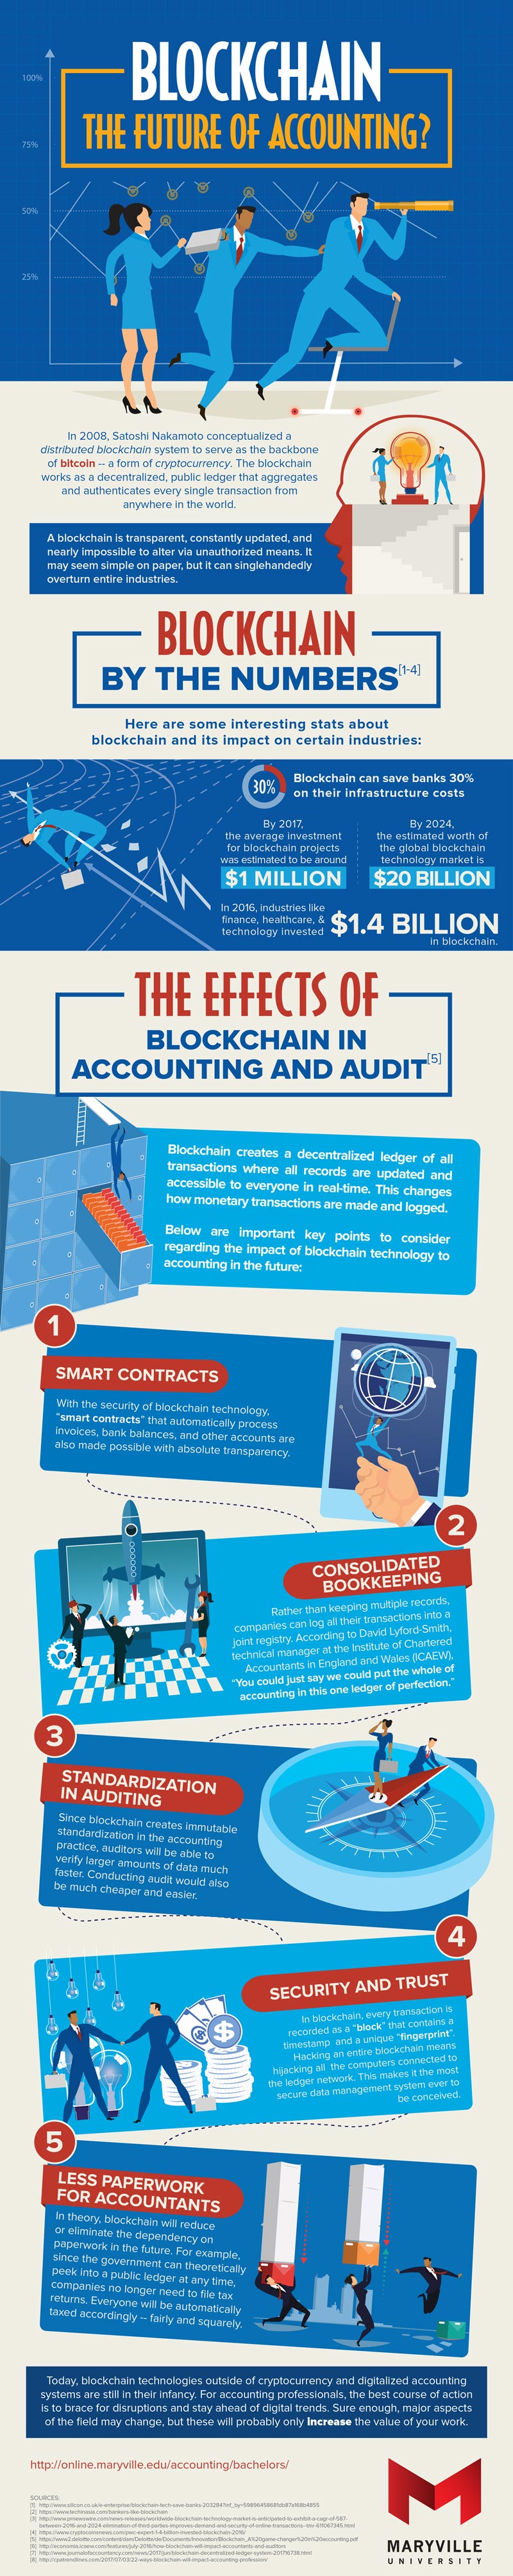 Blockchain in Accounting and Audit